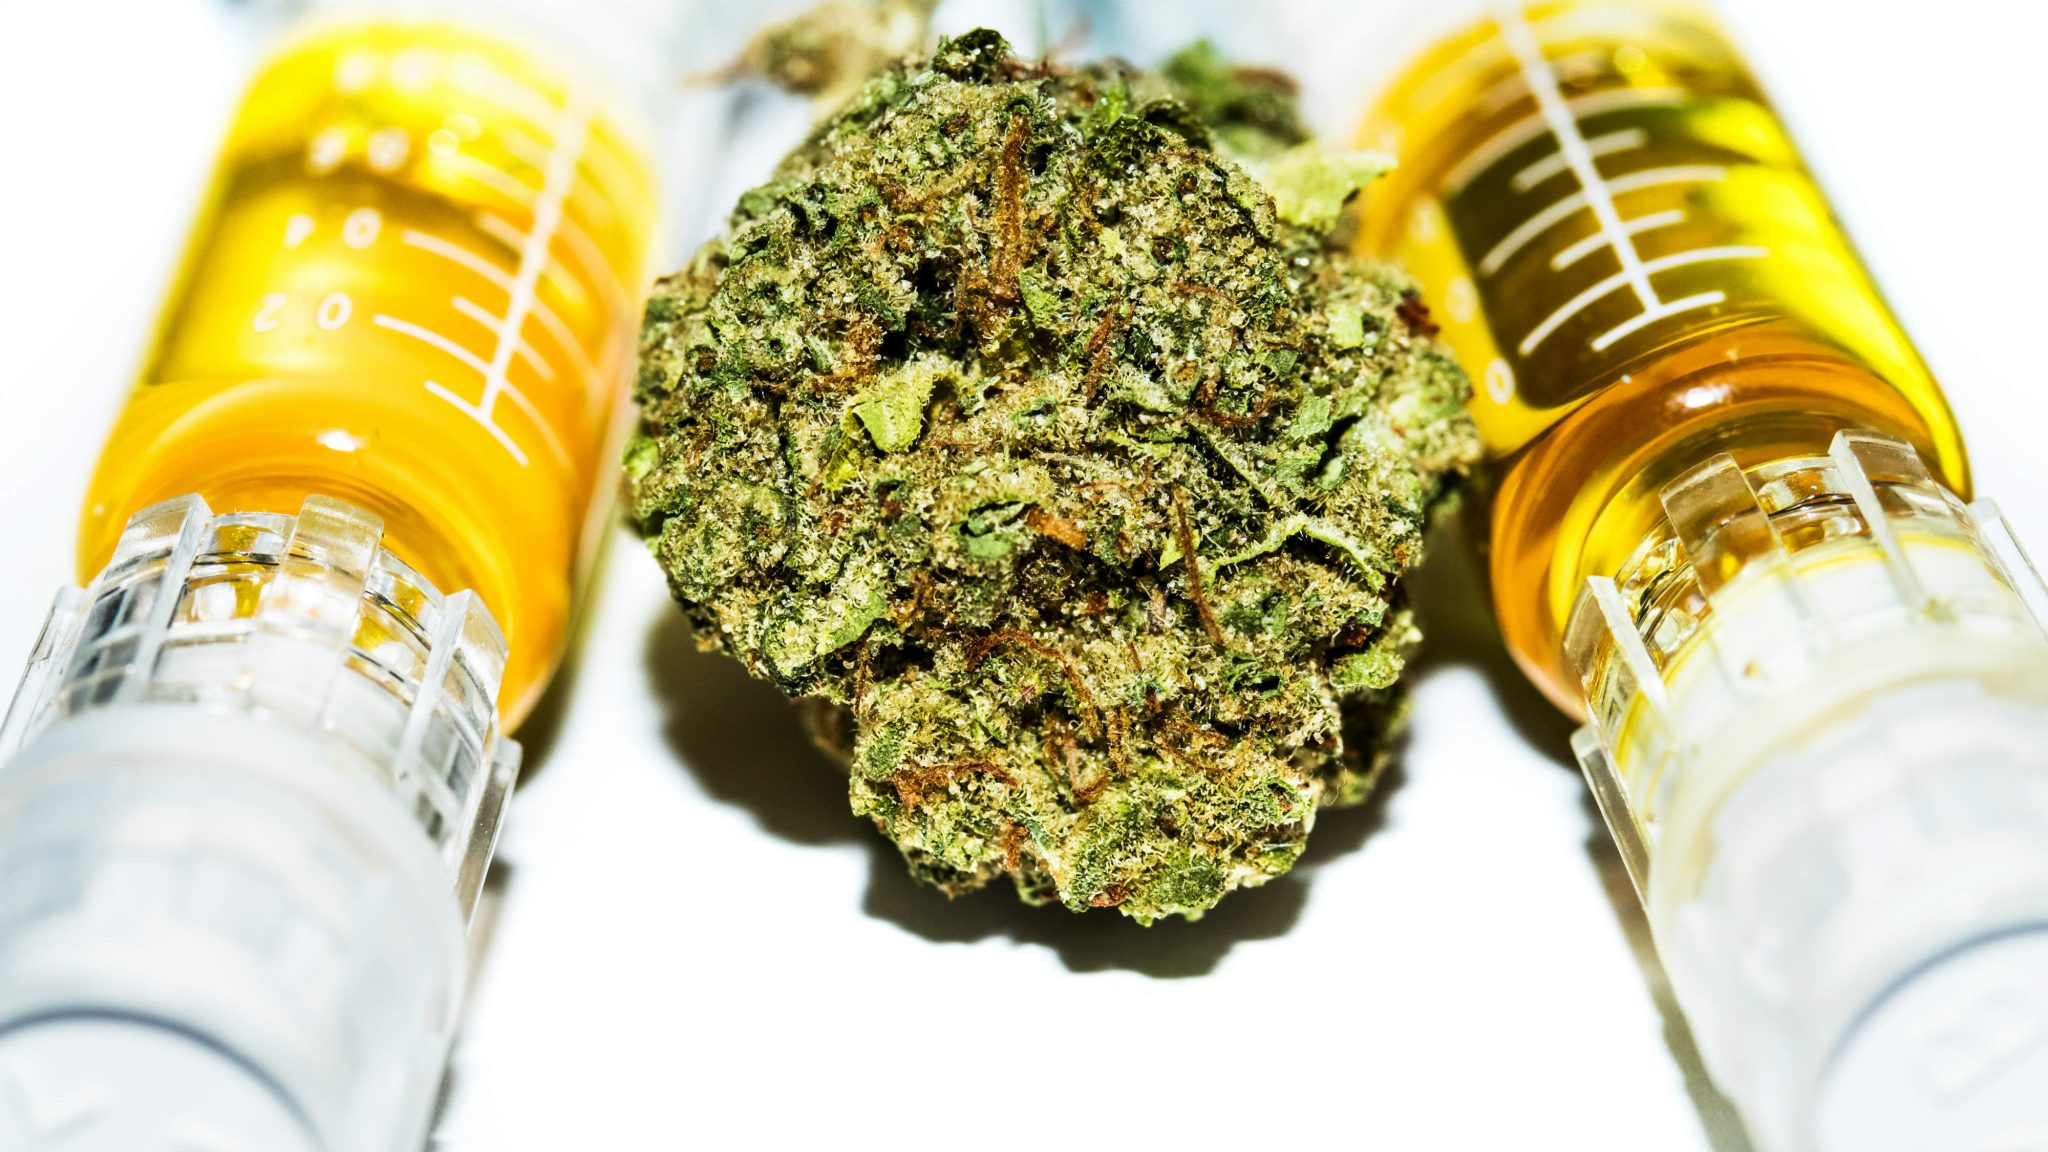 CBD Helps in Controlling Withdrawal Symptoms for those Who Plan to Quit Smoking